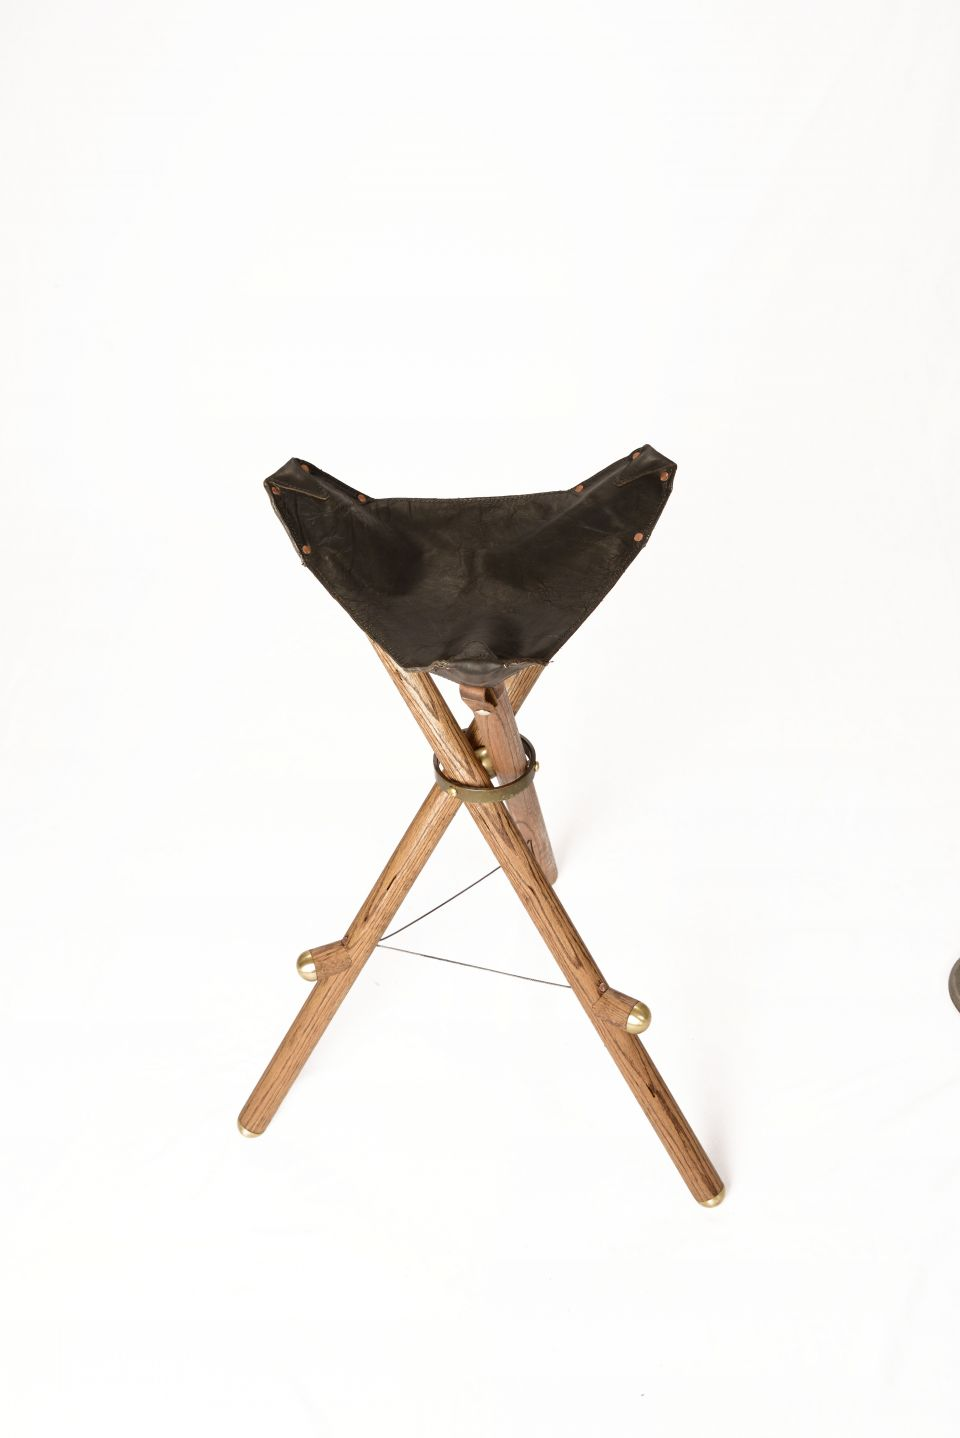 Patented Folding Chairs